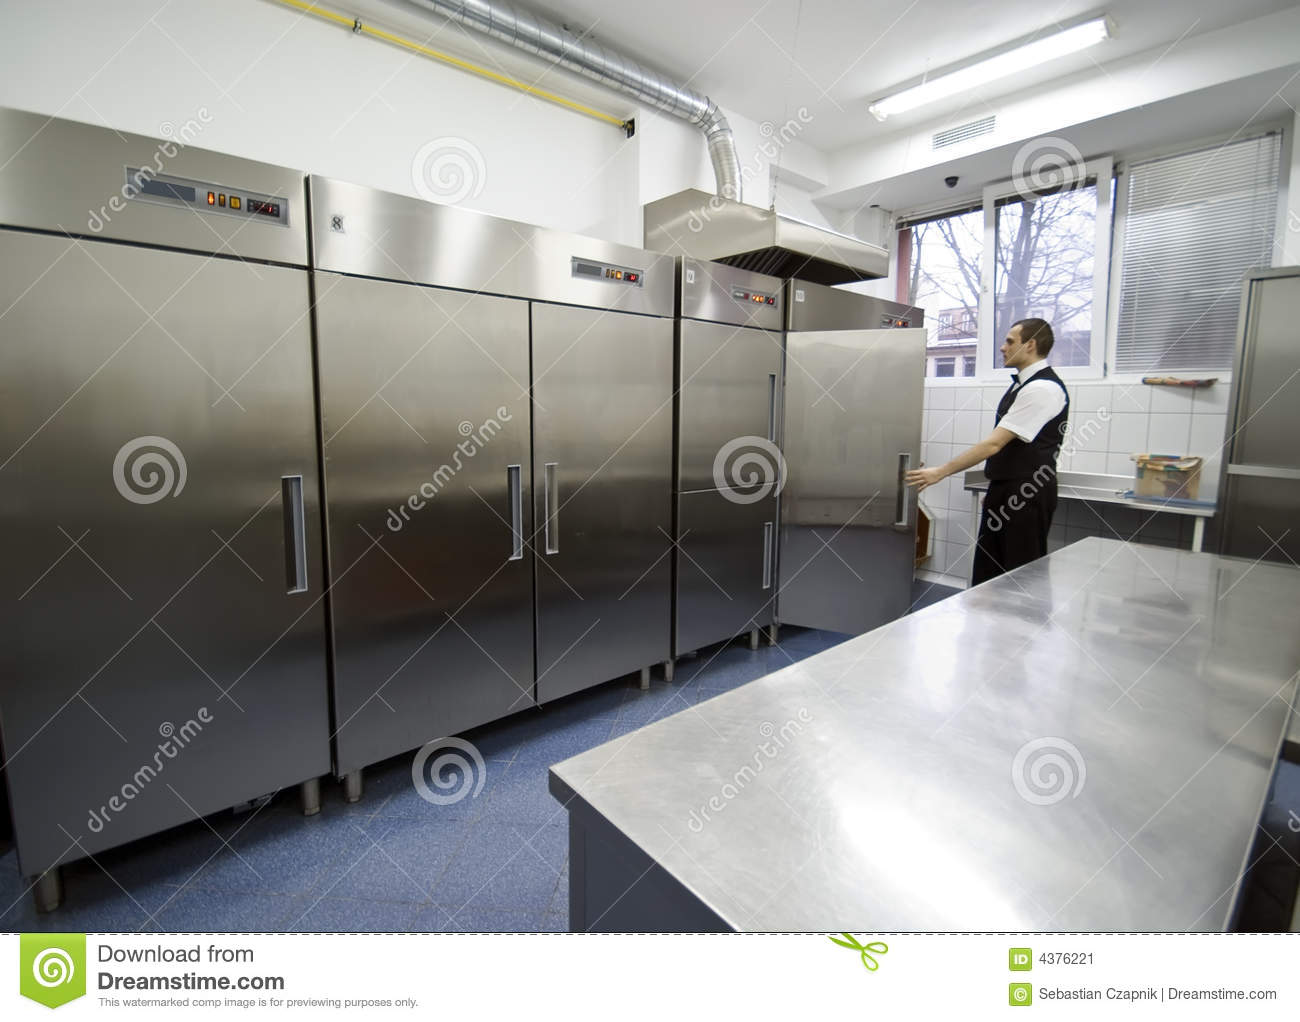 Waiter and fridges